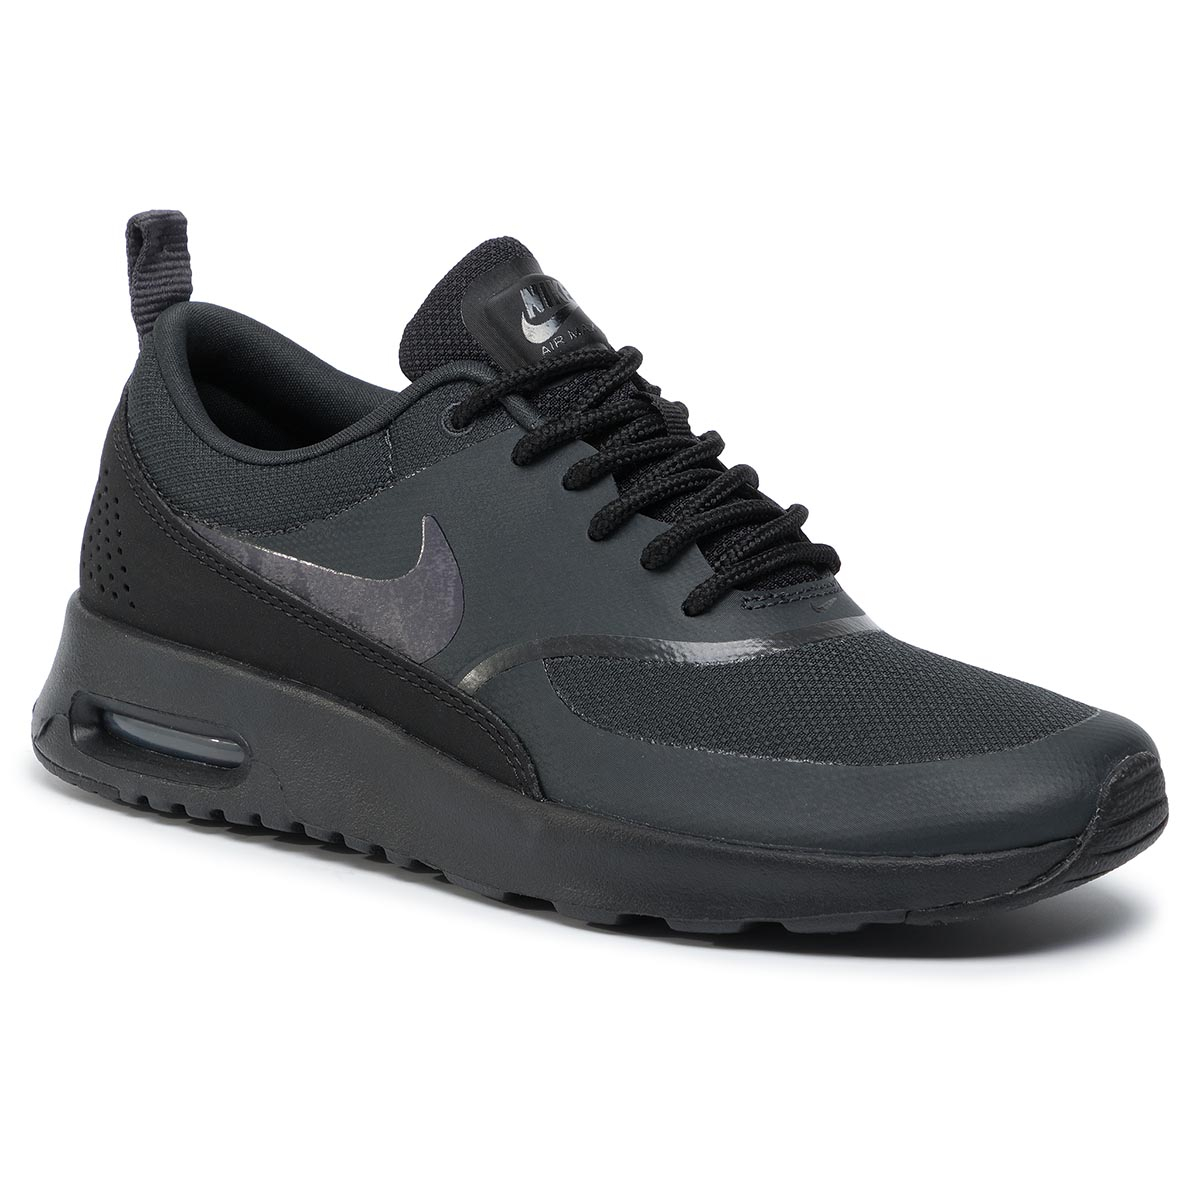 Topánky NIKE - Air Max Thea 599409 036 Off Noir/Gridiron/Black